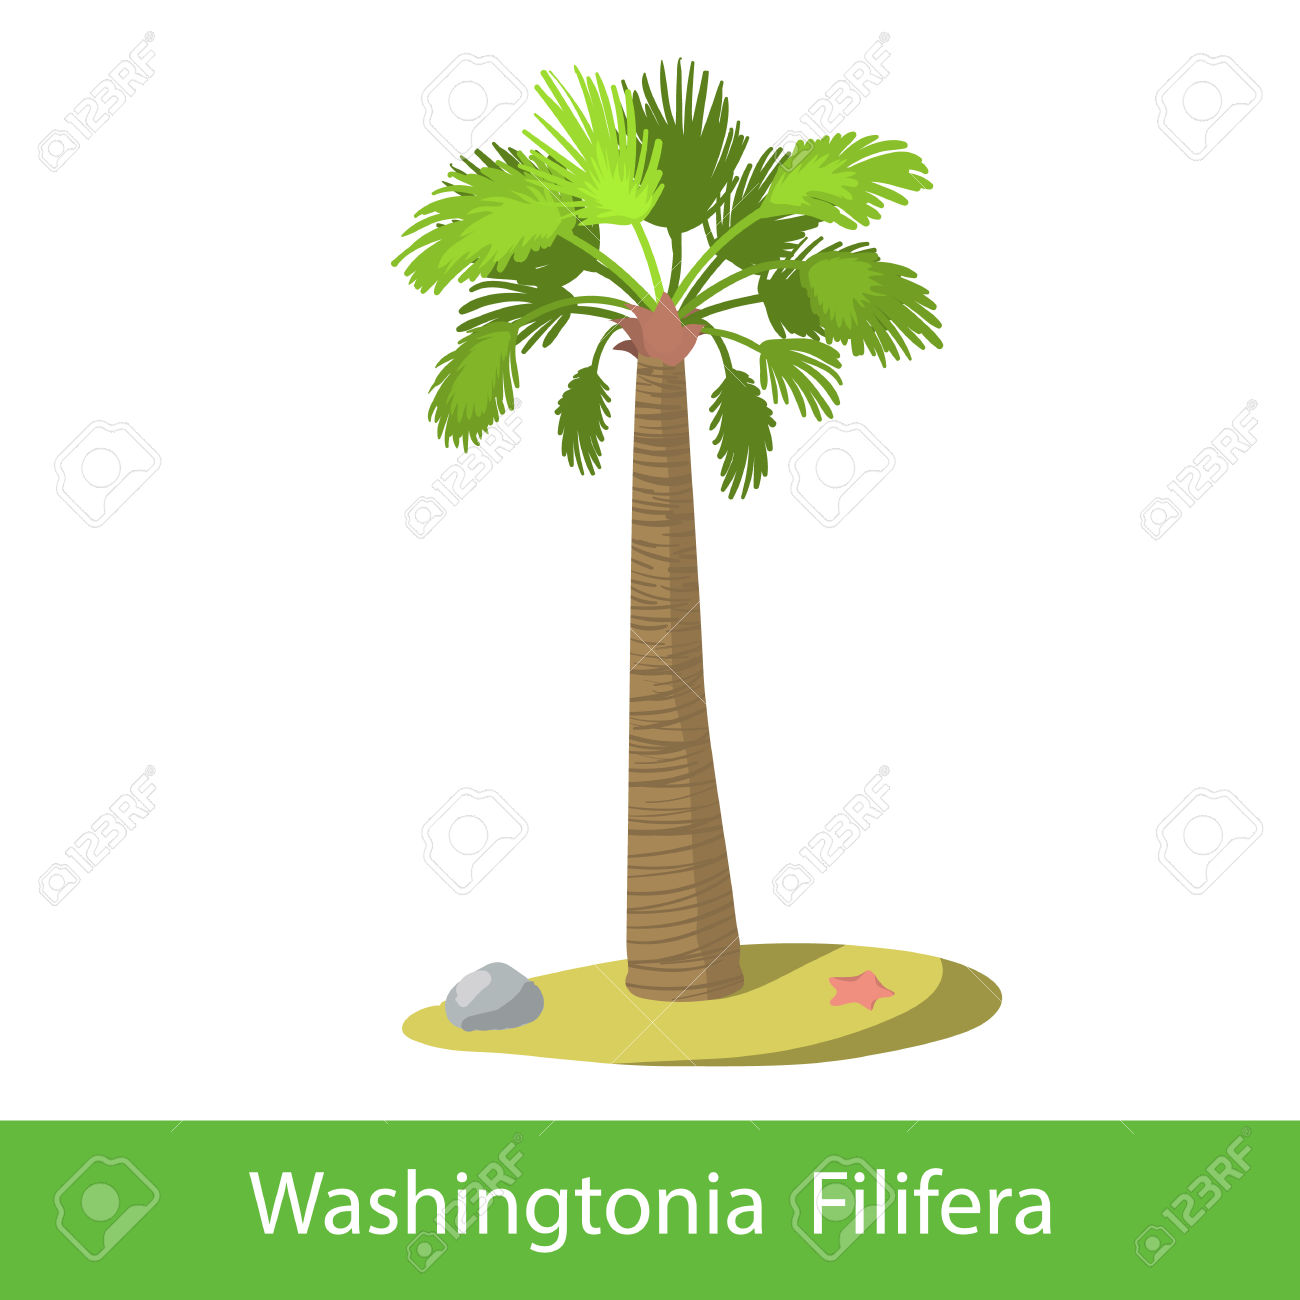 Washingtonia Filifera Cartoon Tree. Single Illustration On A.